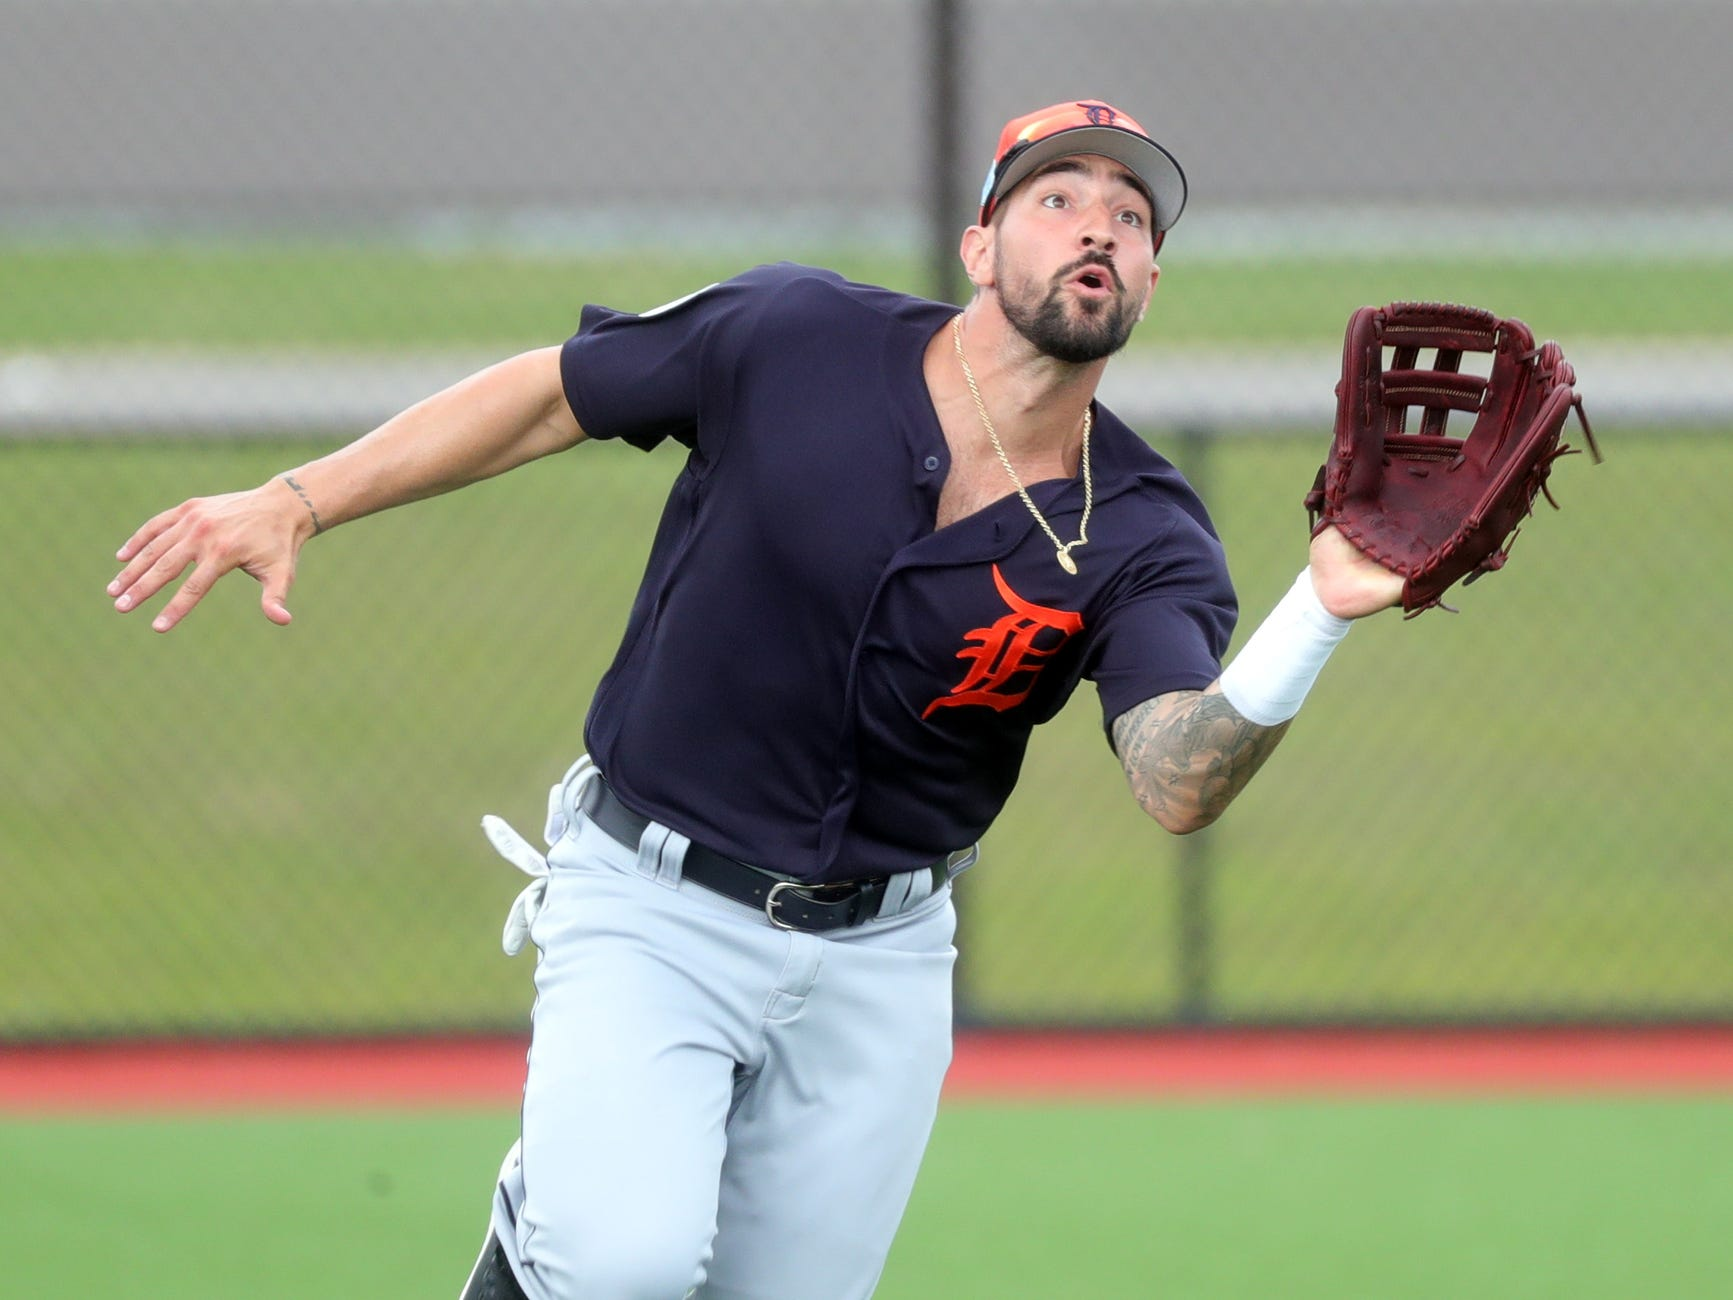 Tigers outfielder Nicholas Castellanos catches a fly ball during spring training on Wednesday, Feb. 20, 2019, at Joker Marchant Stadium in Lakeland, Fla.